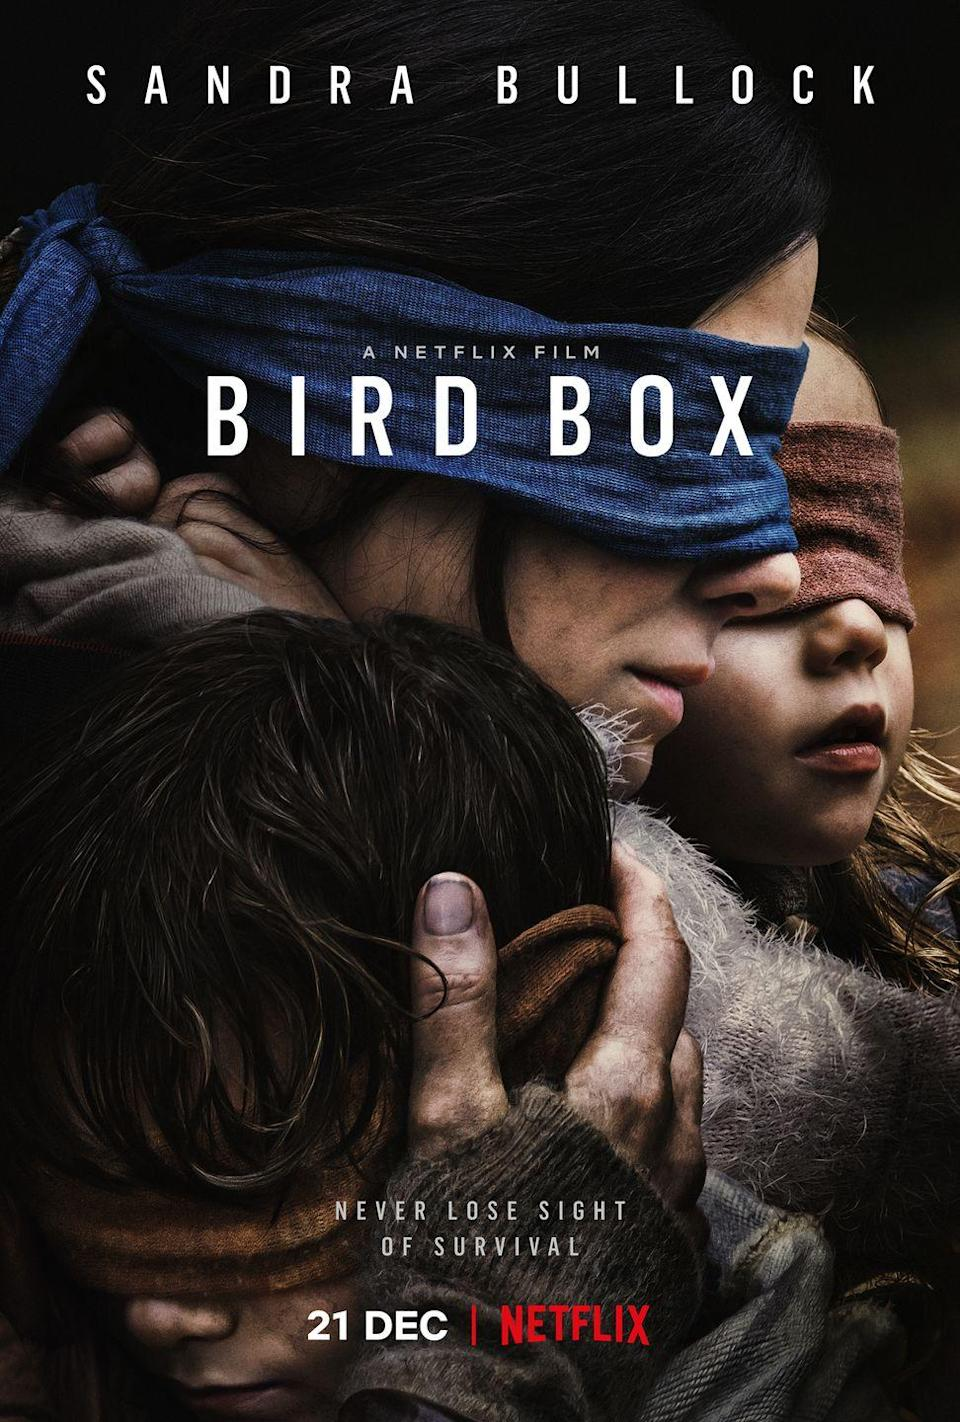 """<p>Sandra Bullock plays a mother who makes a desperate attempt with her two kids to reach safety after an """"unseen presence"""" has taken out most of society.</p><p><a class=""""link rapid-noclick-resp"""" href=""""https://www.netflix.com/title/80196789"""" rel=""""nofollow noopener"""" target=""""_blank"""" data-ylk=""""slk:STREAM NOW"""">STREAM NOW</a></p>"""